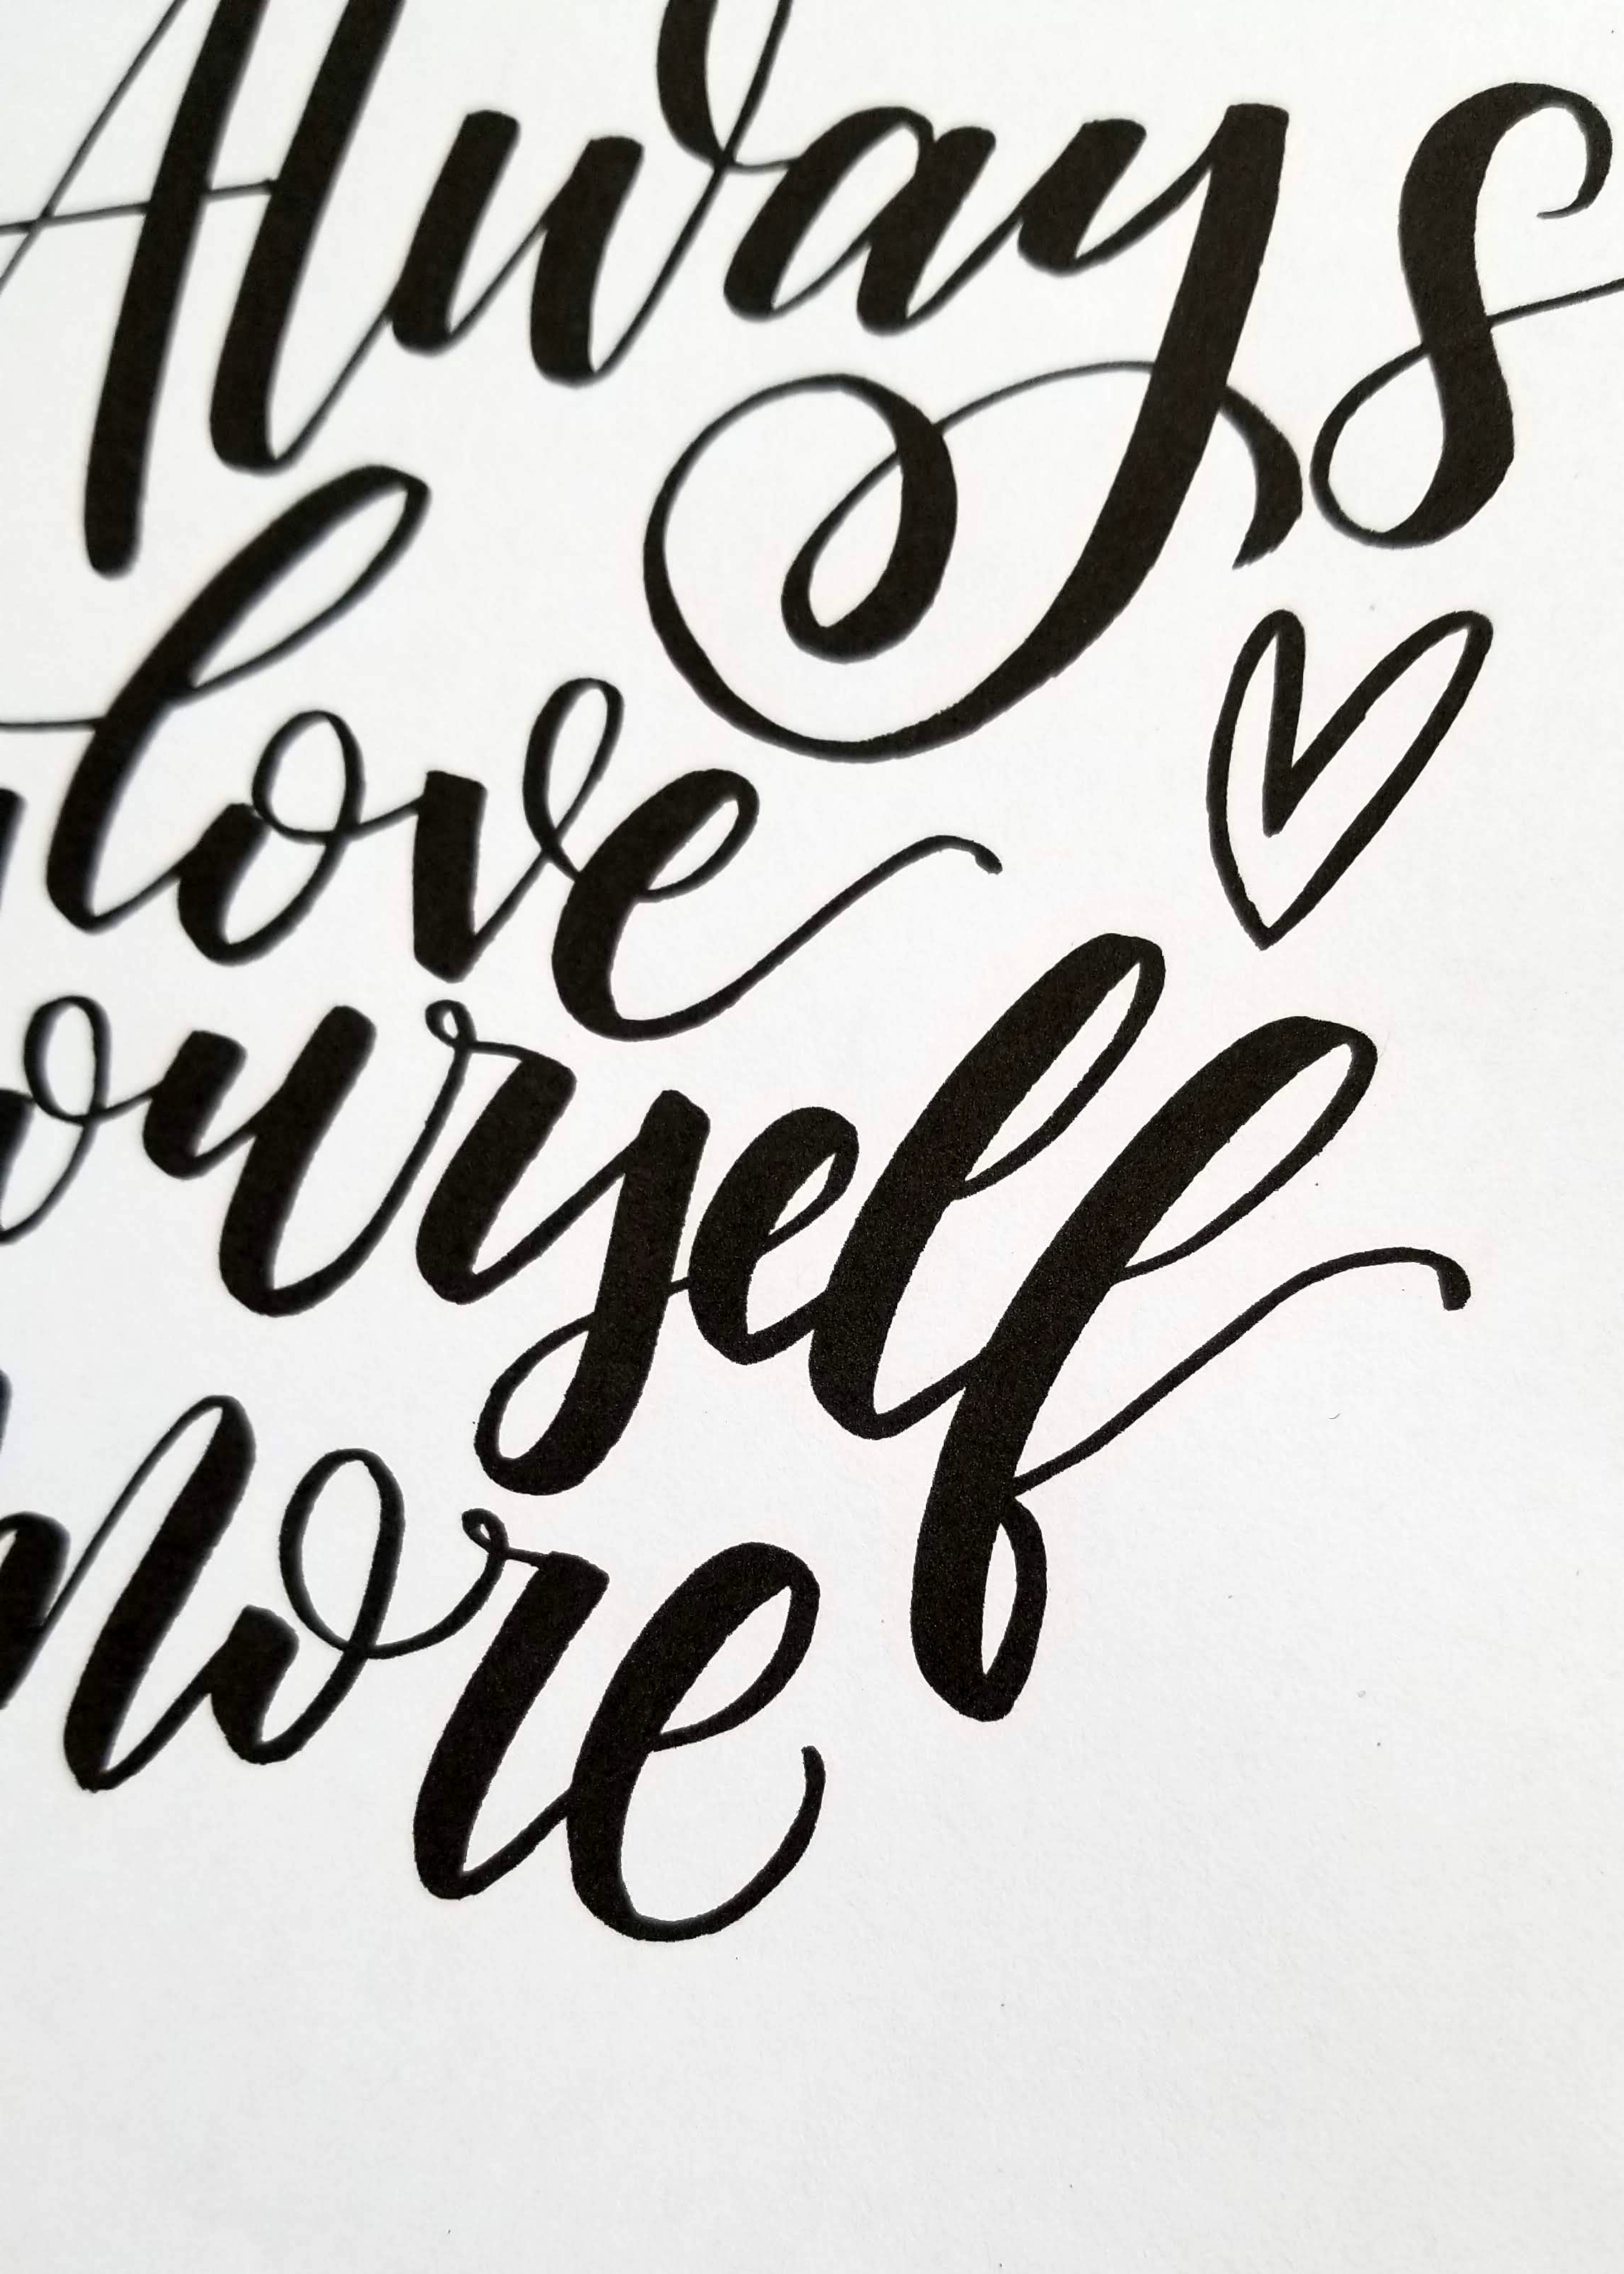 Always love yourself more - CLoseup1